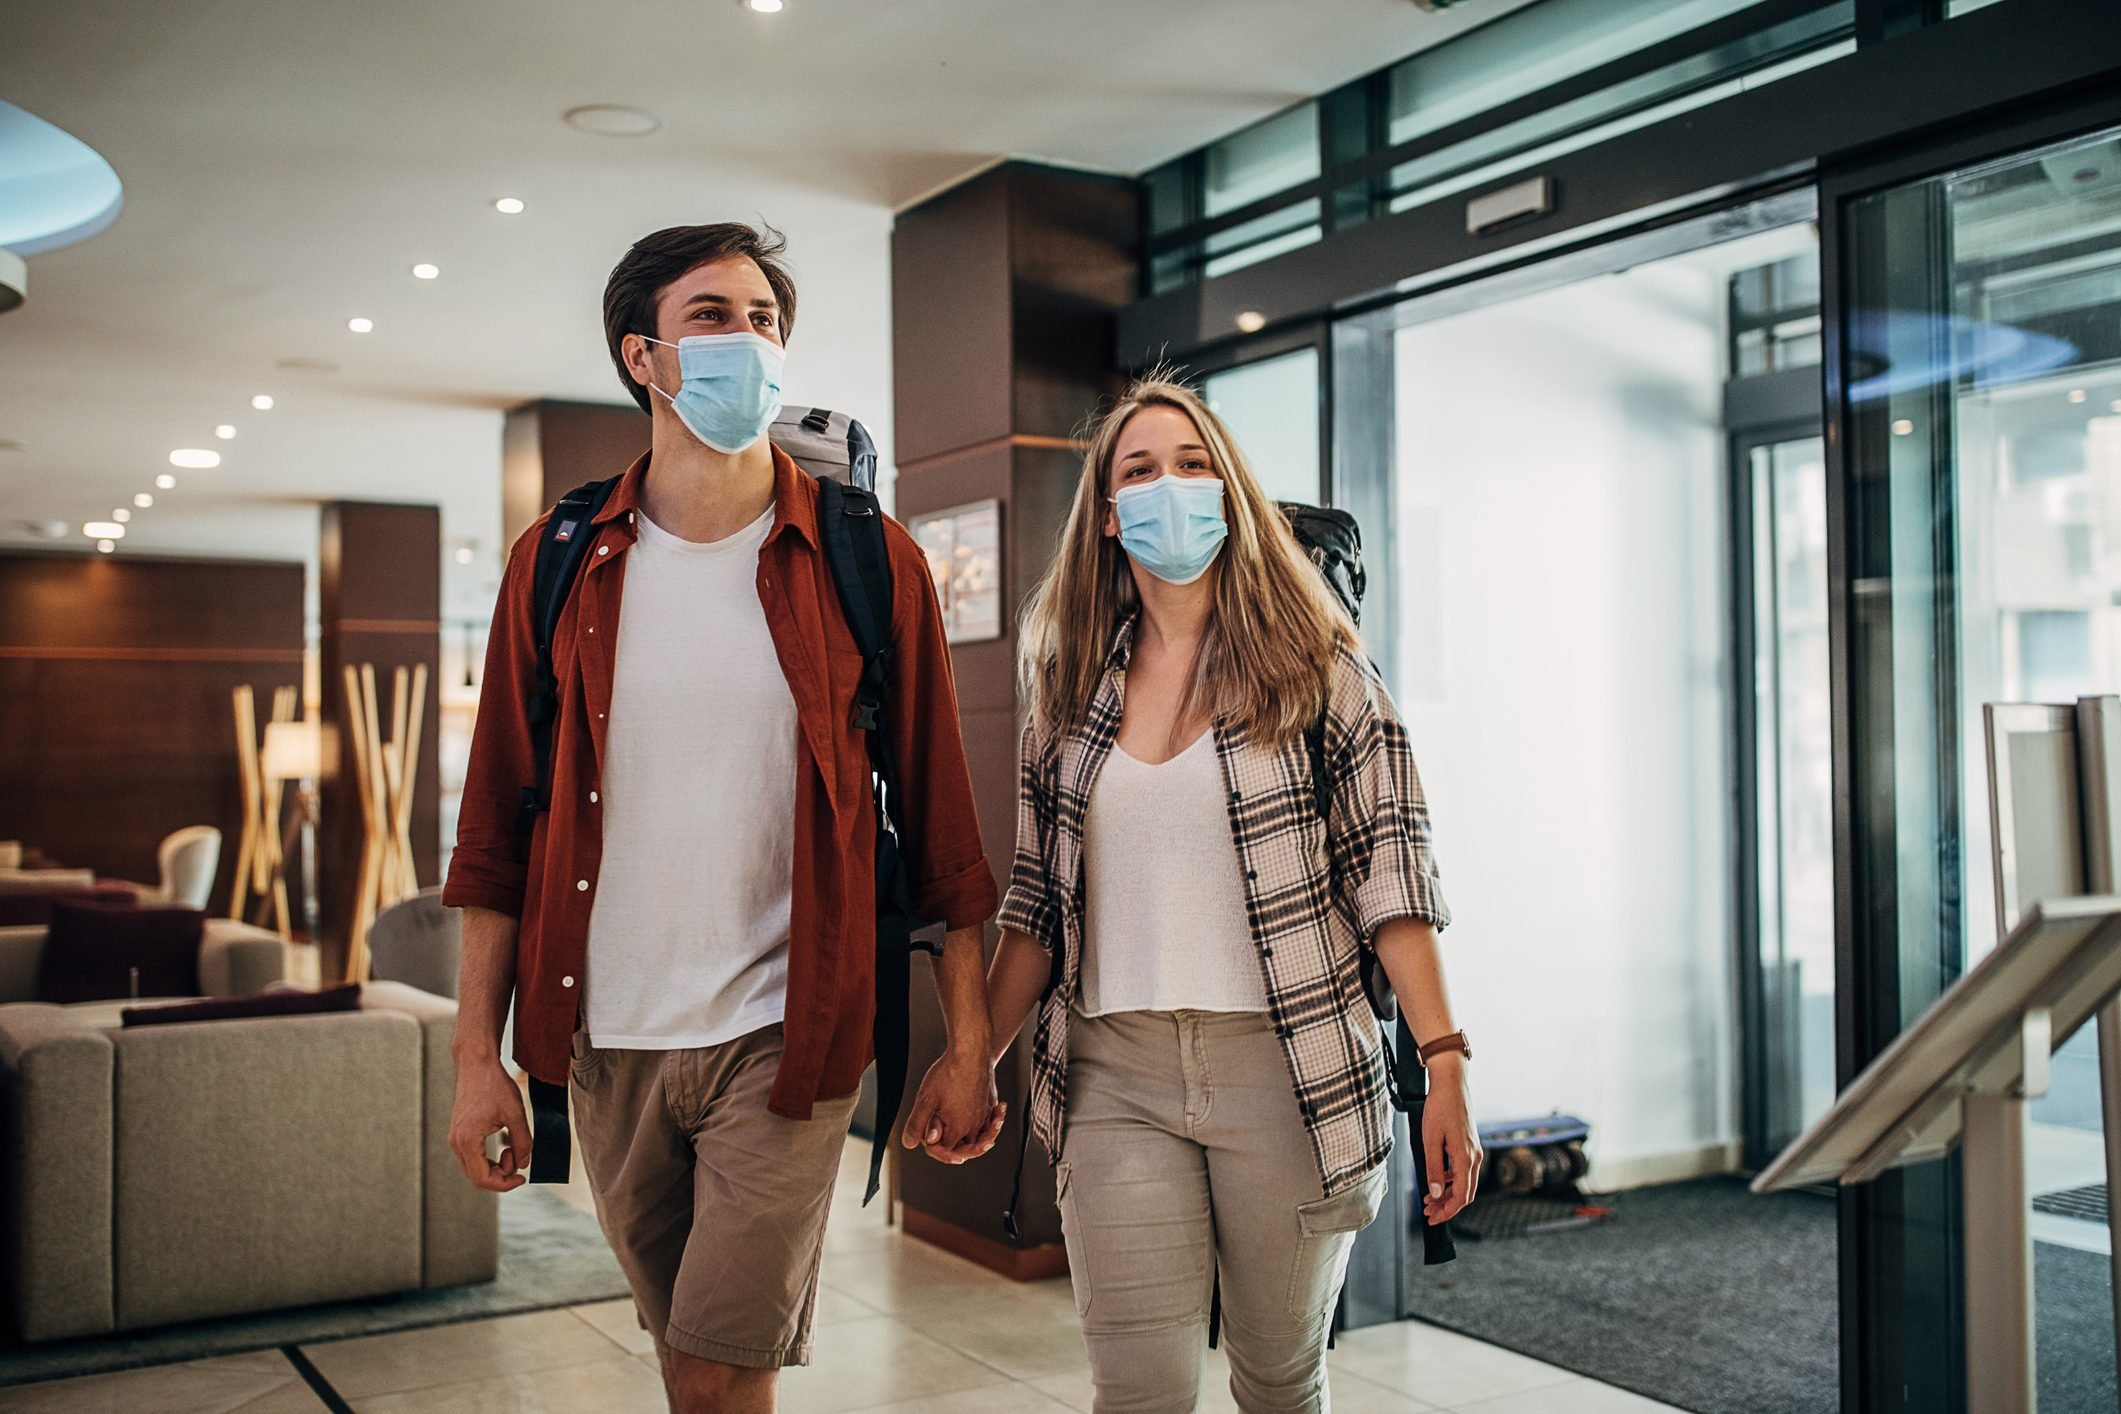 One young couple with protective face masks entering the hotel lobby